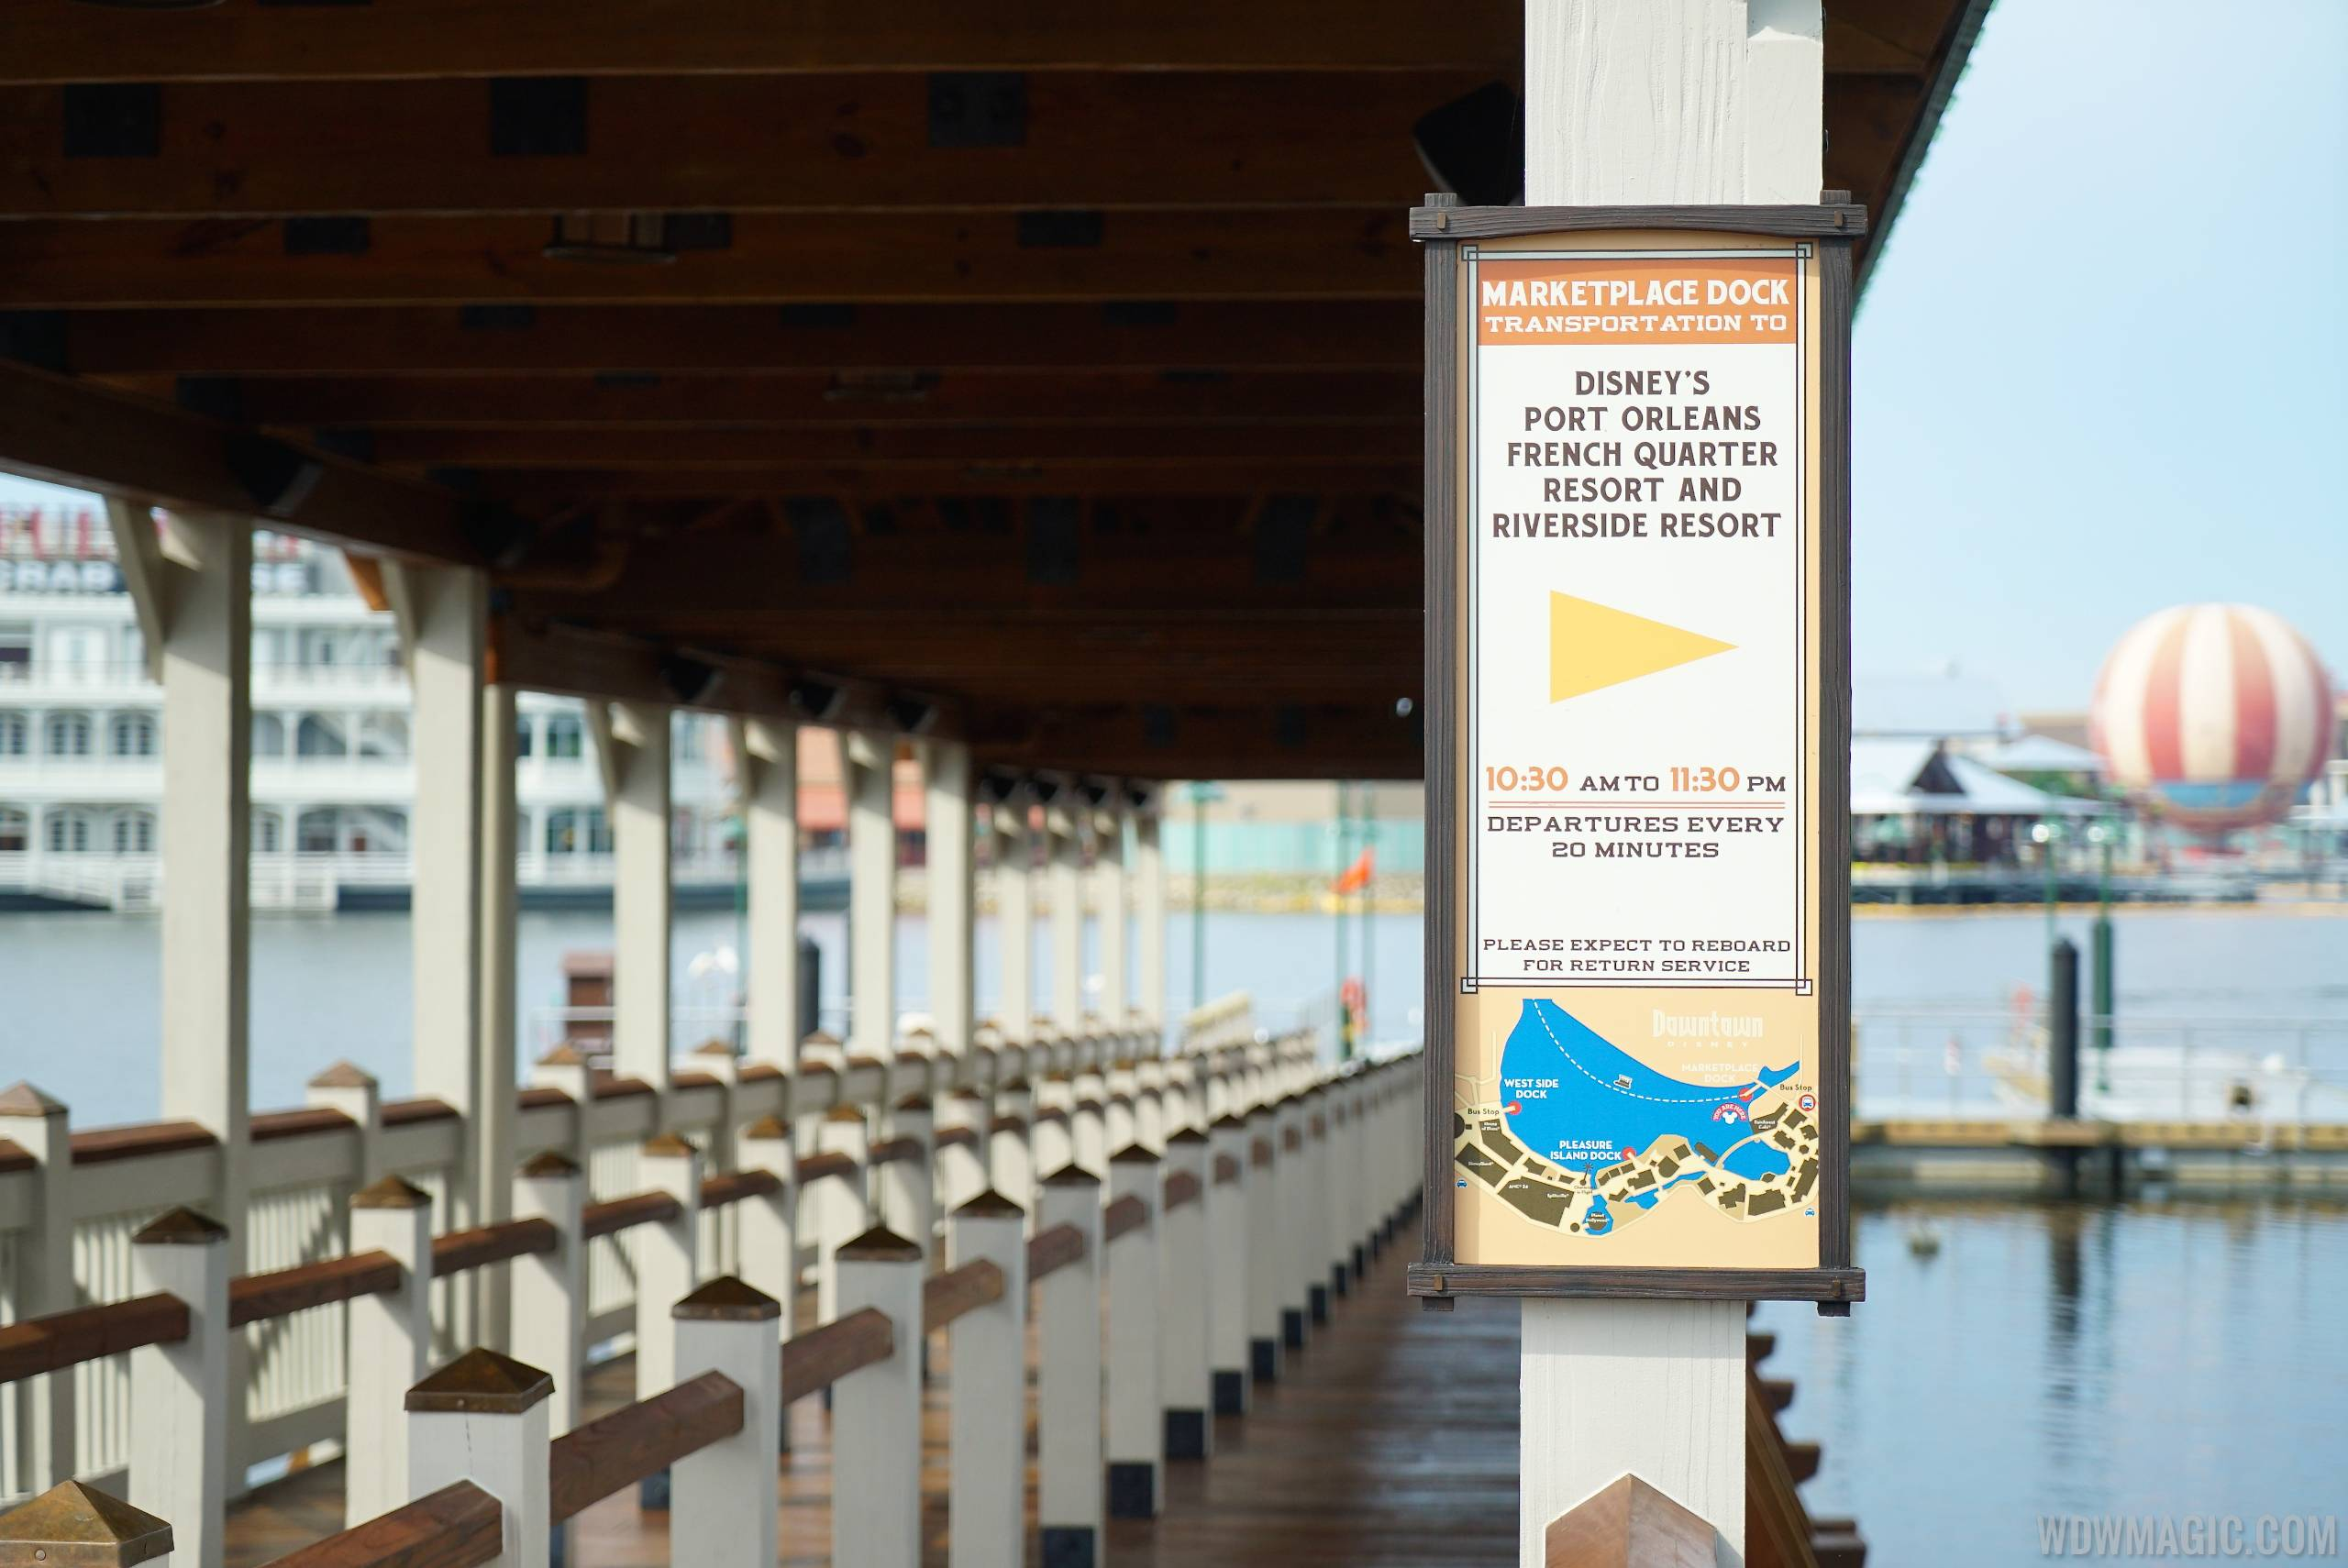 PHOTOS - Disney Springs Marketplace boat dock and walkway to ...